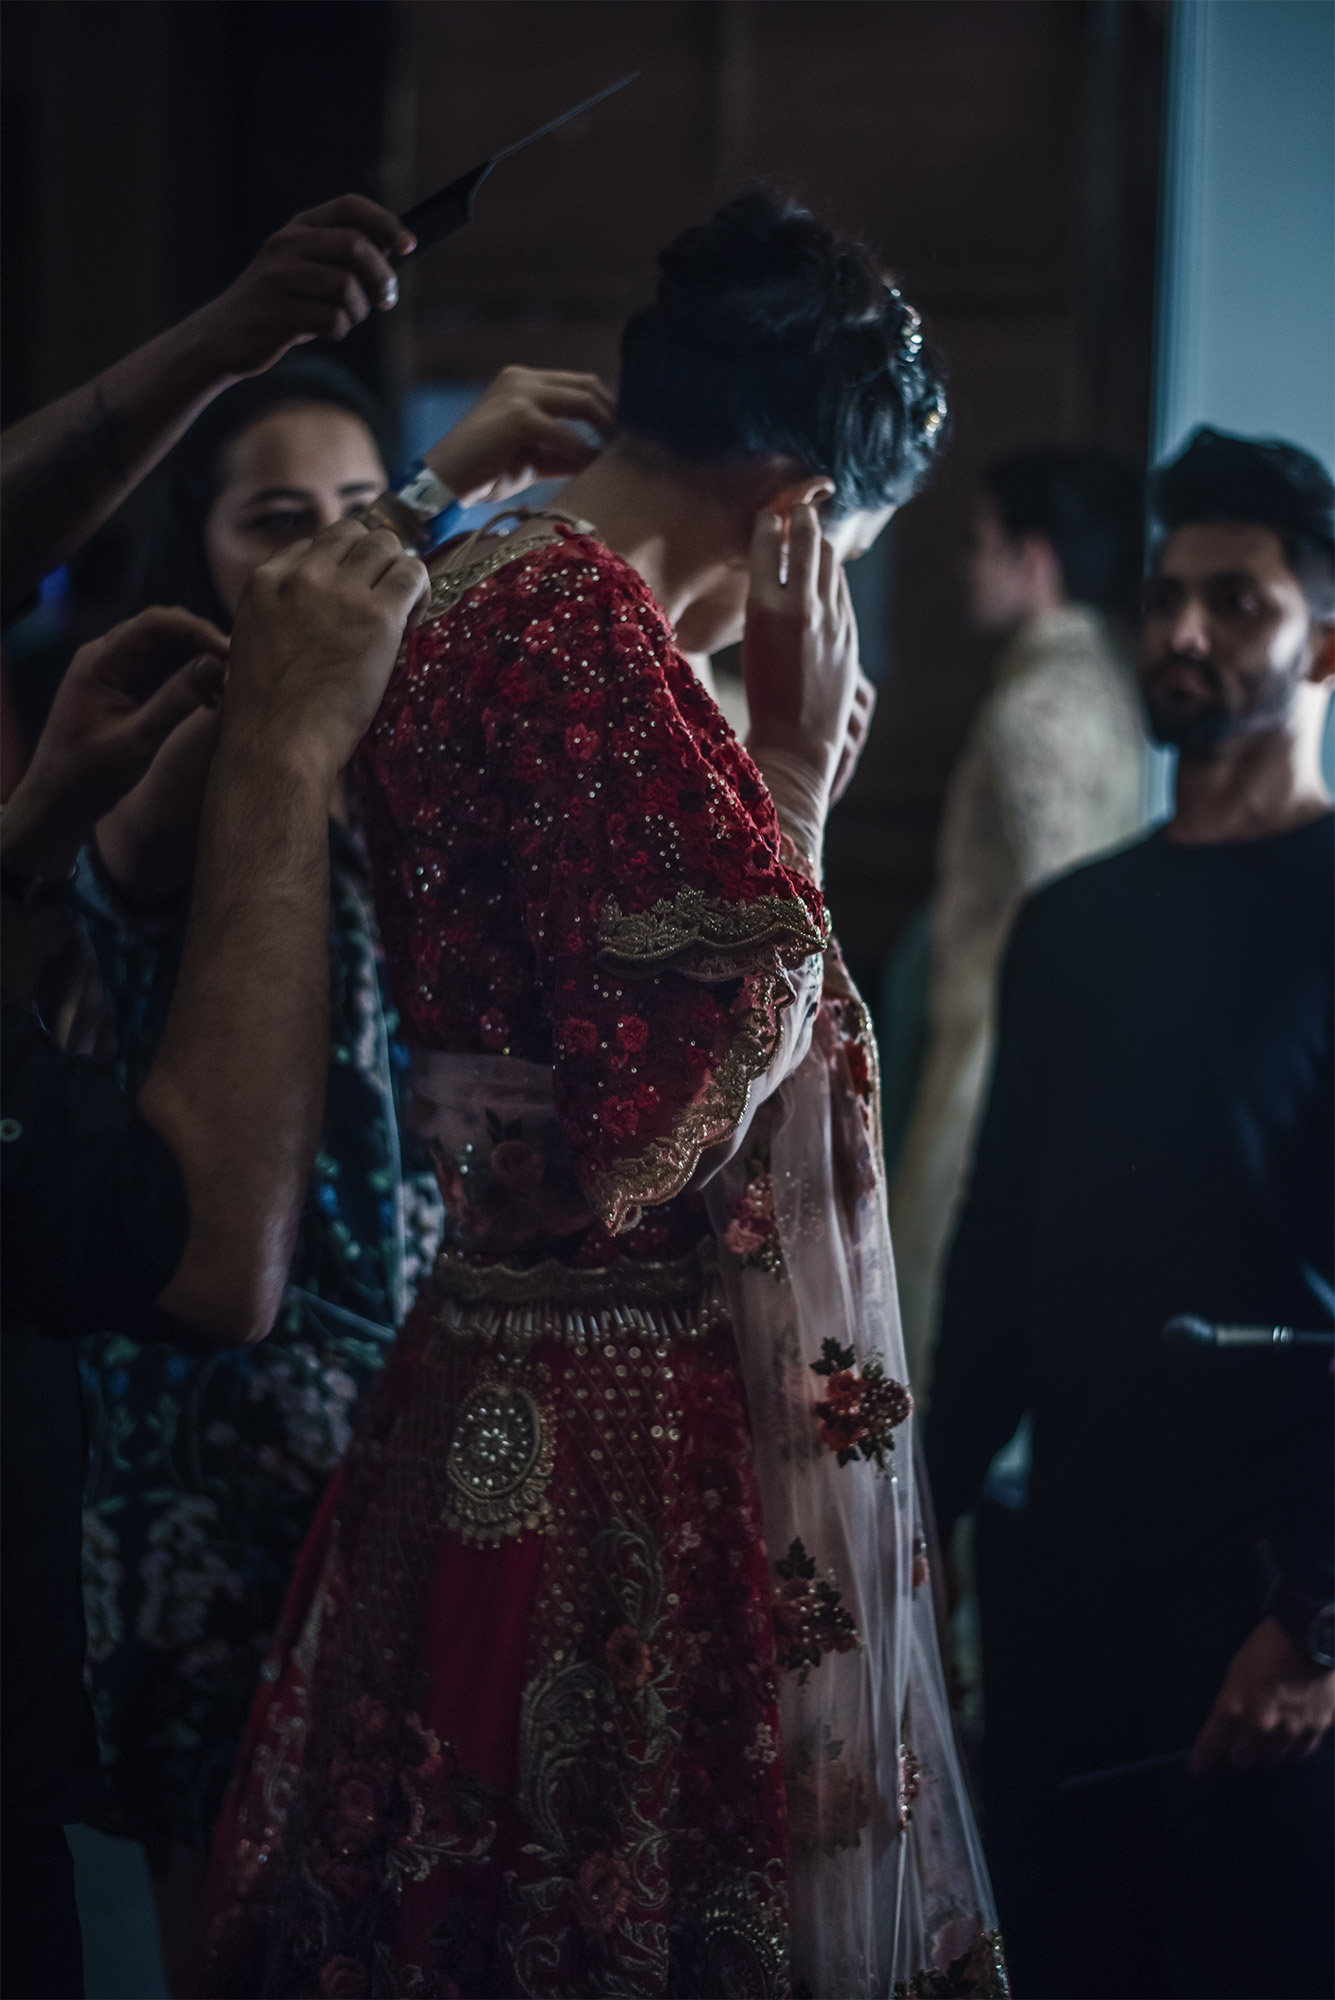 M.A.C. Backstage FDCI India Couture Week 2016 Photo by RAWKY KSH 35